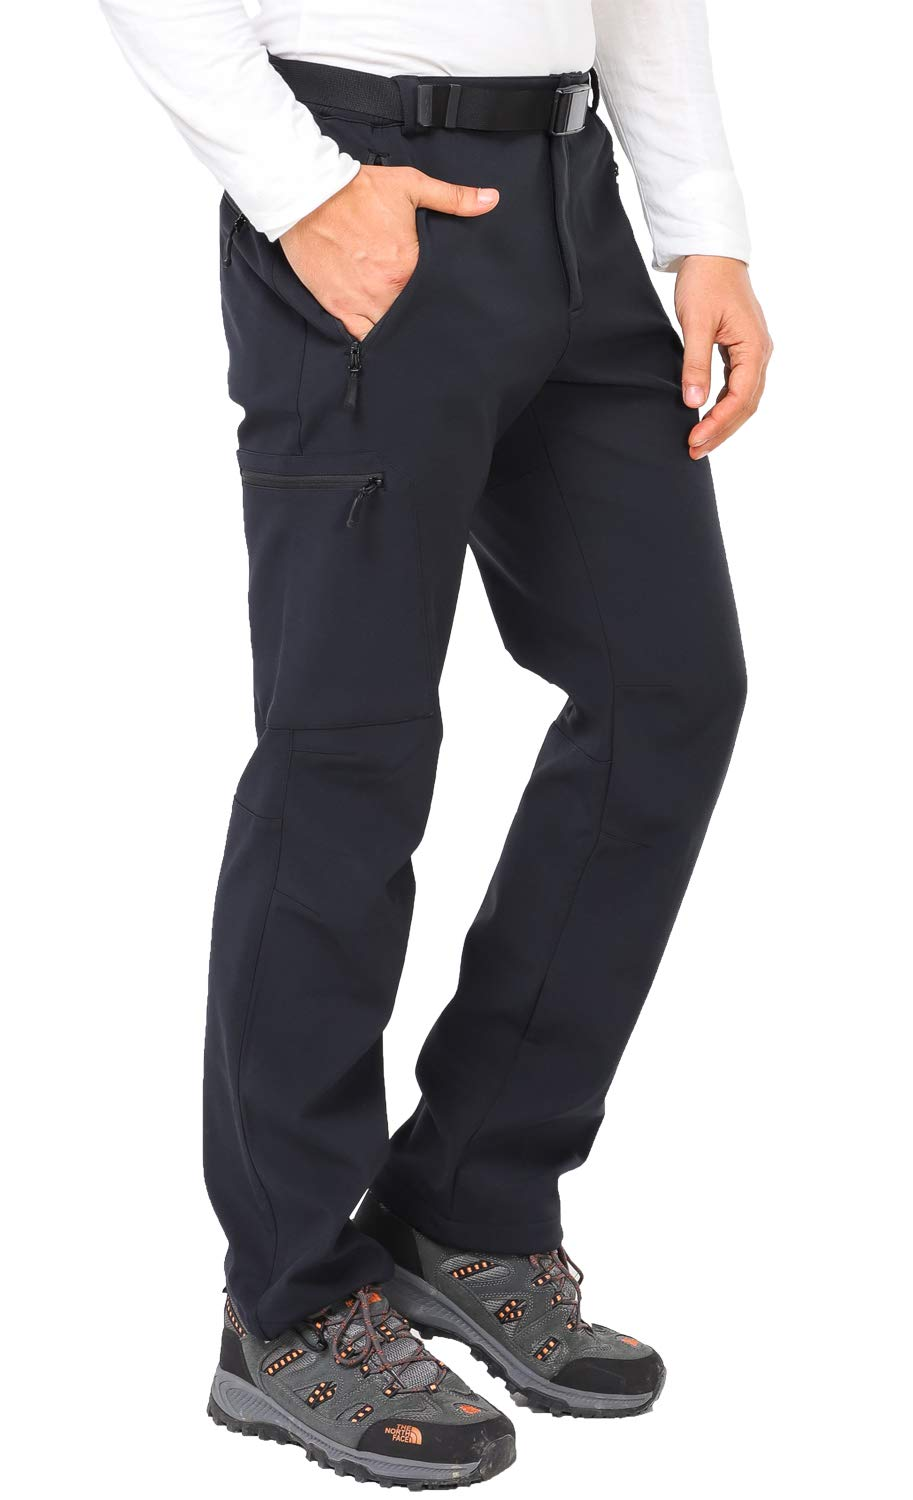 Black Anti-Static MIER Mens Stretch Cargo Hiking Pants Water-Resistant Tactical Pants with 5 Zipper Pockets